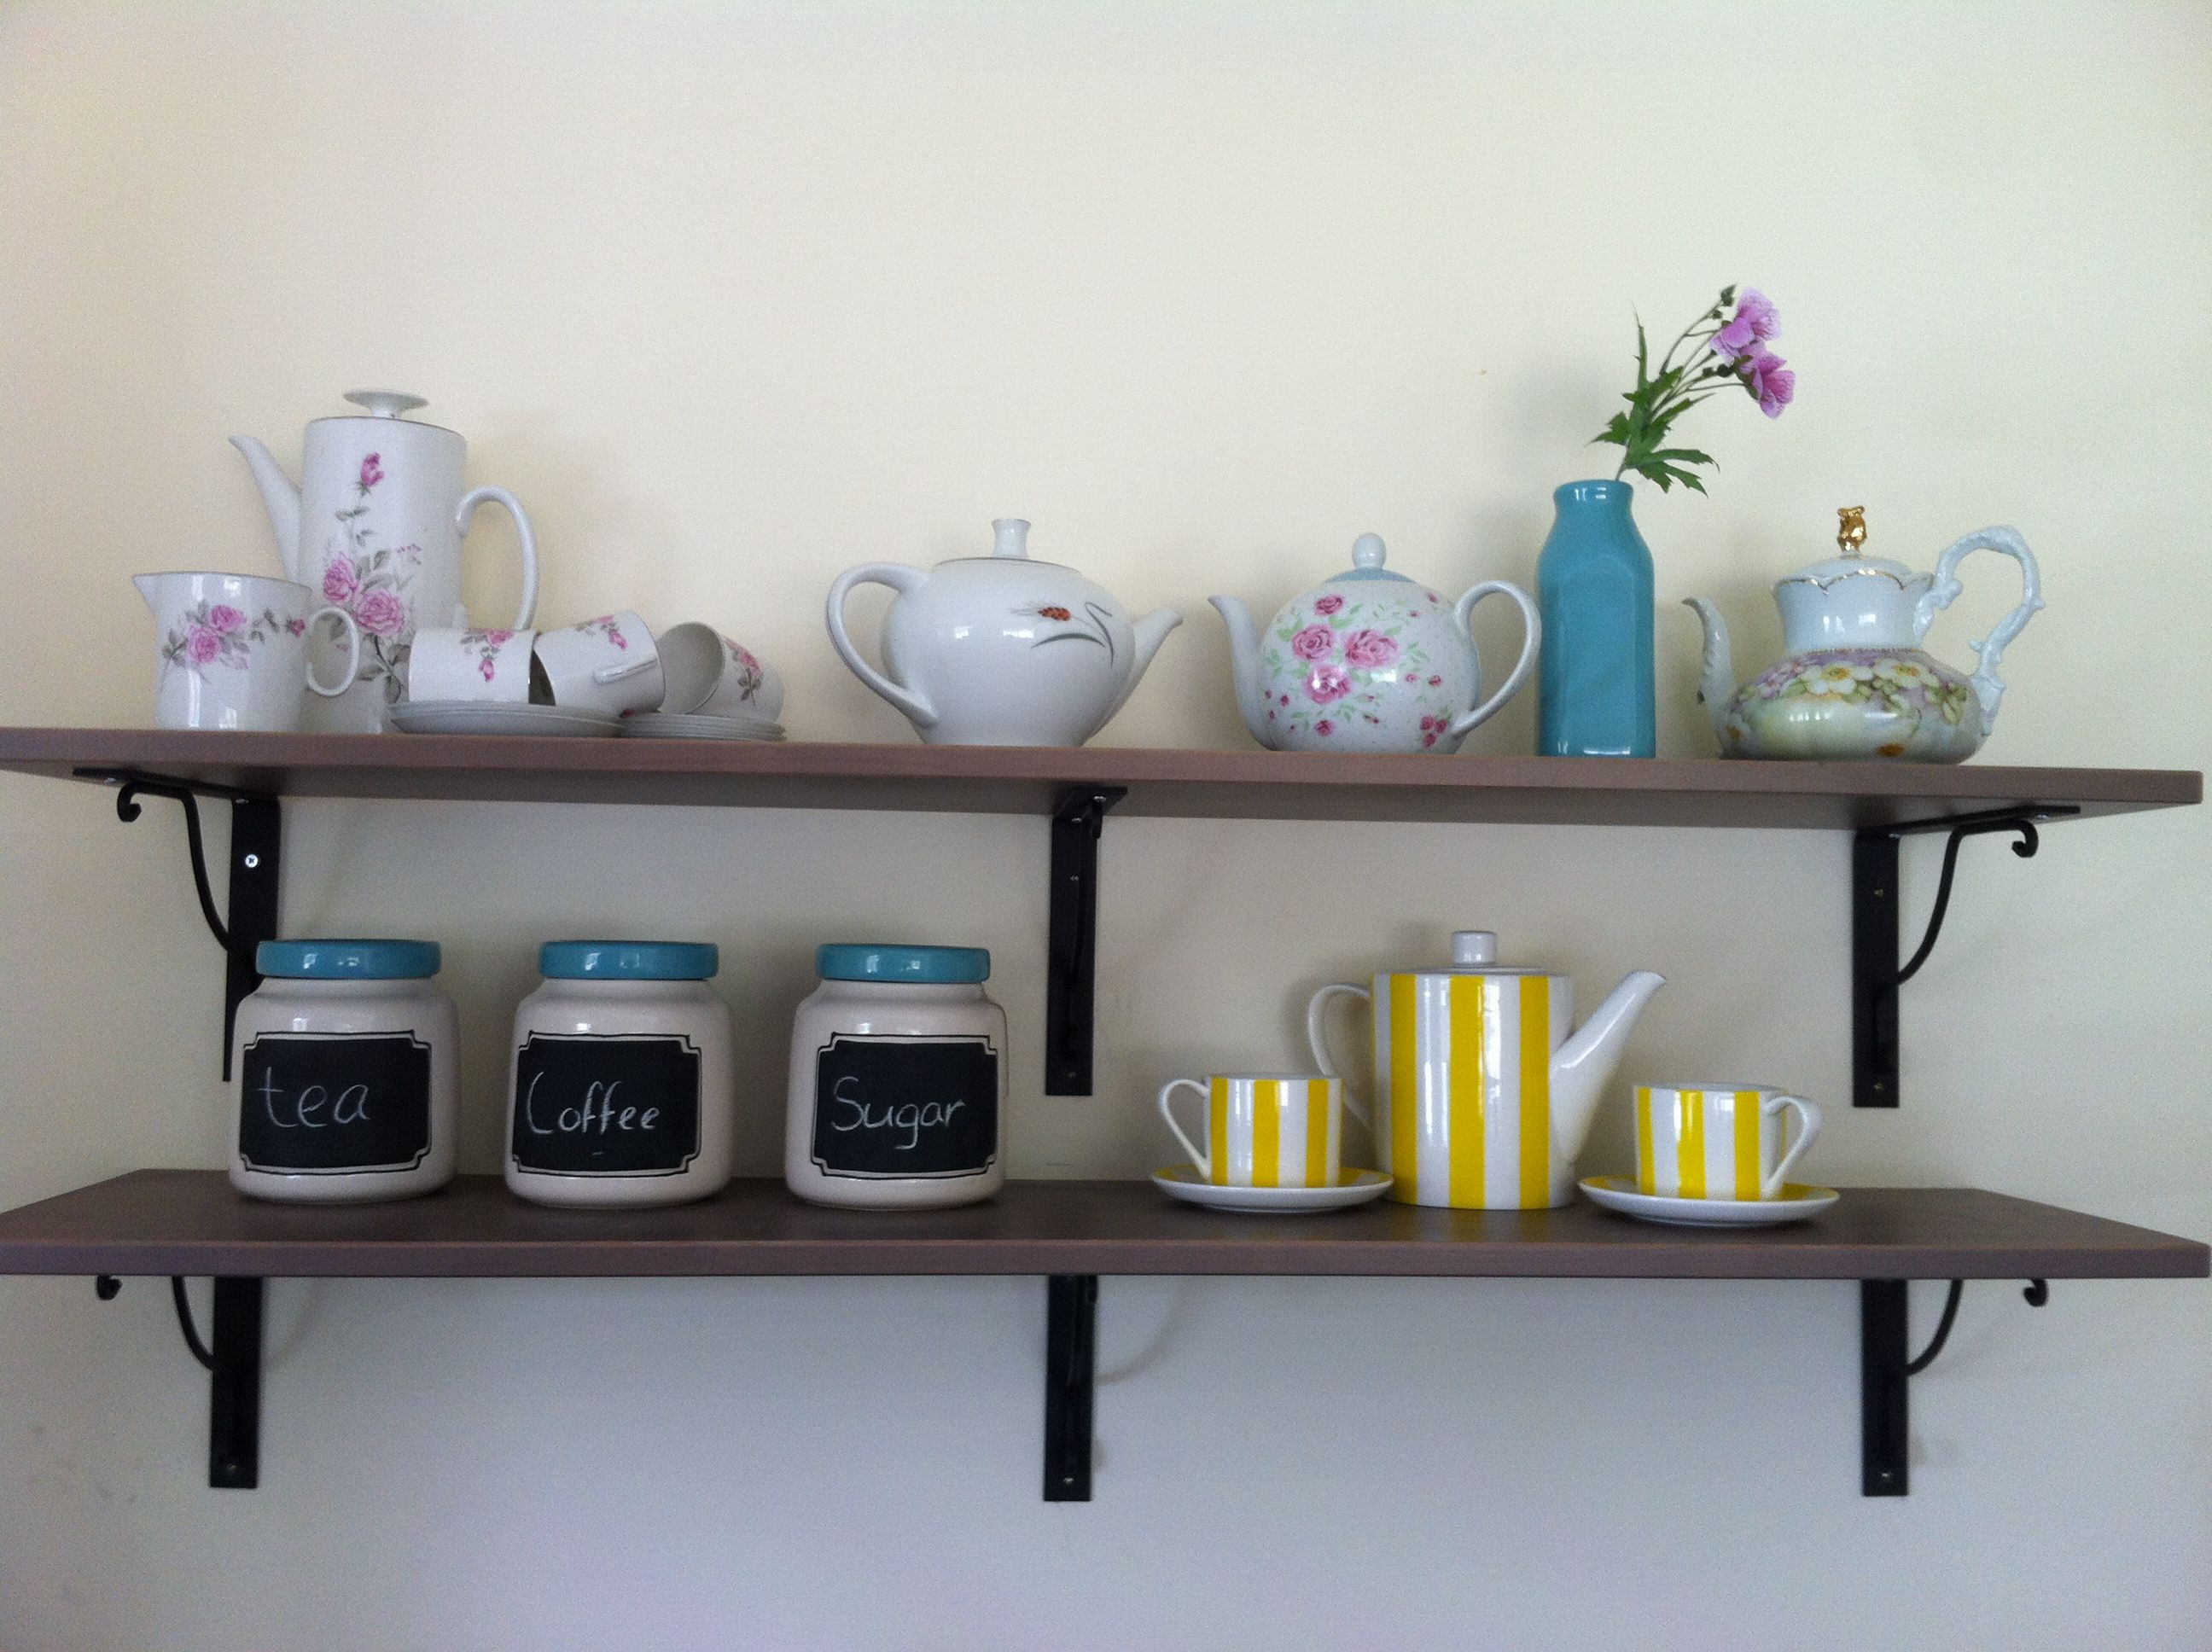 My tea and coffee station kitchen wall | Kitchen wall inspiration ...